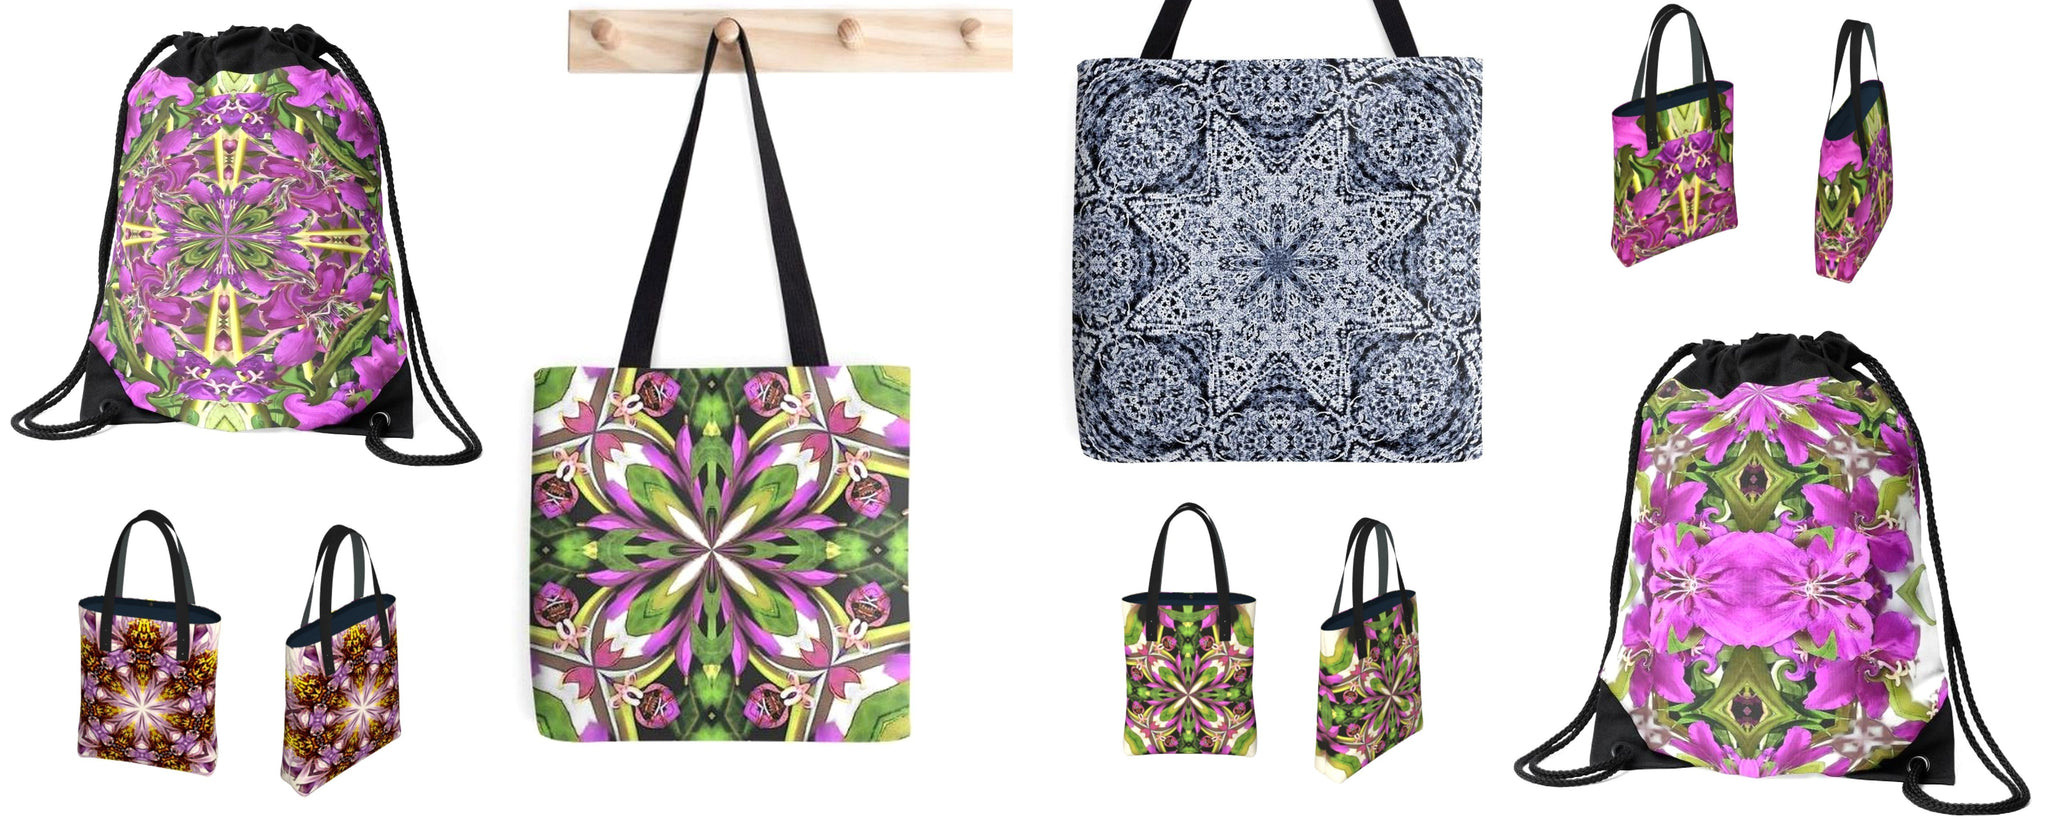 Botanical art print fashion bag collection